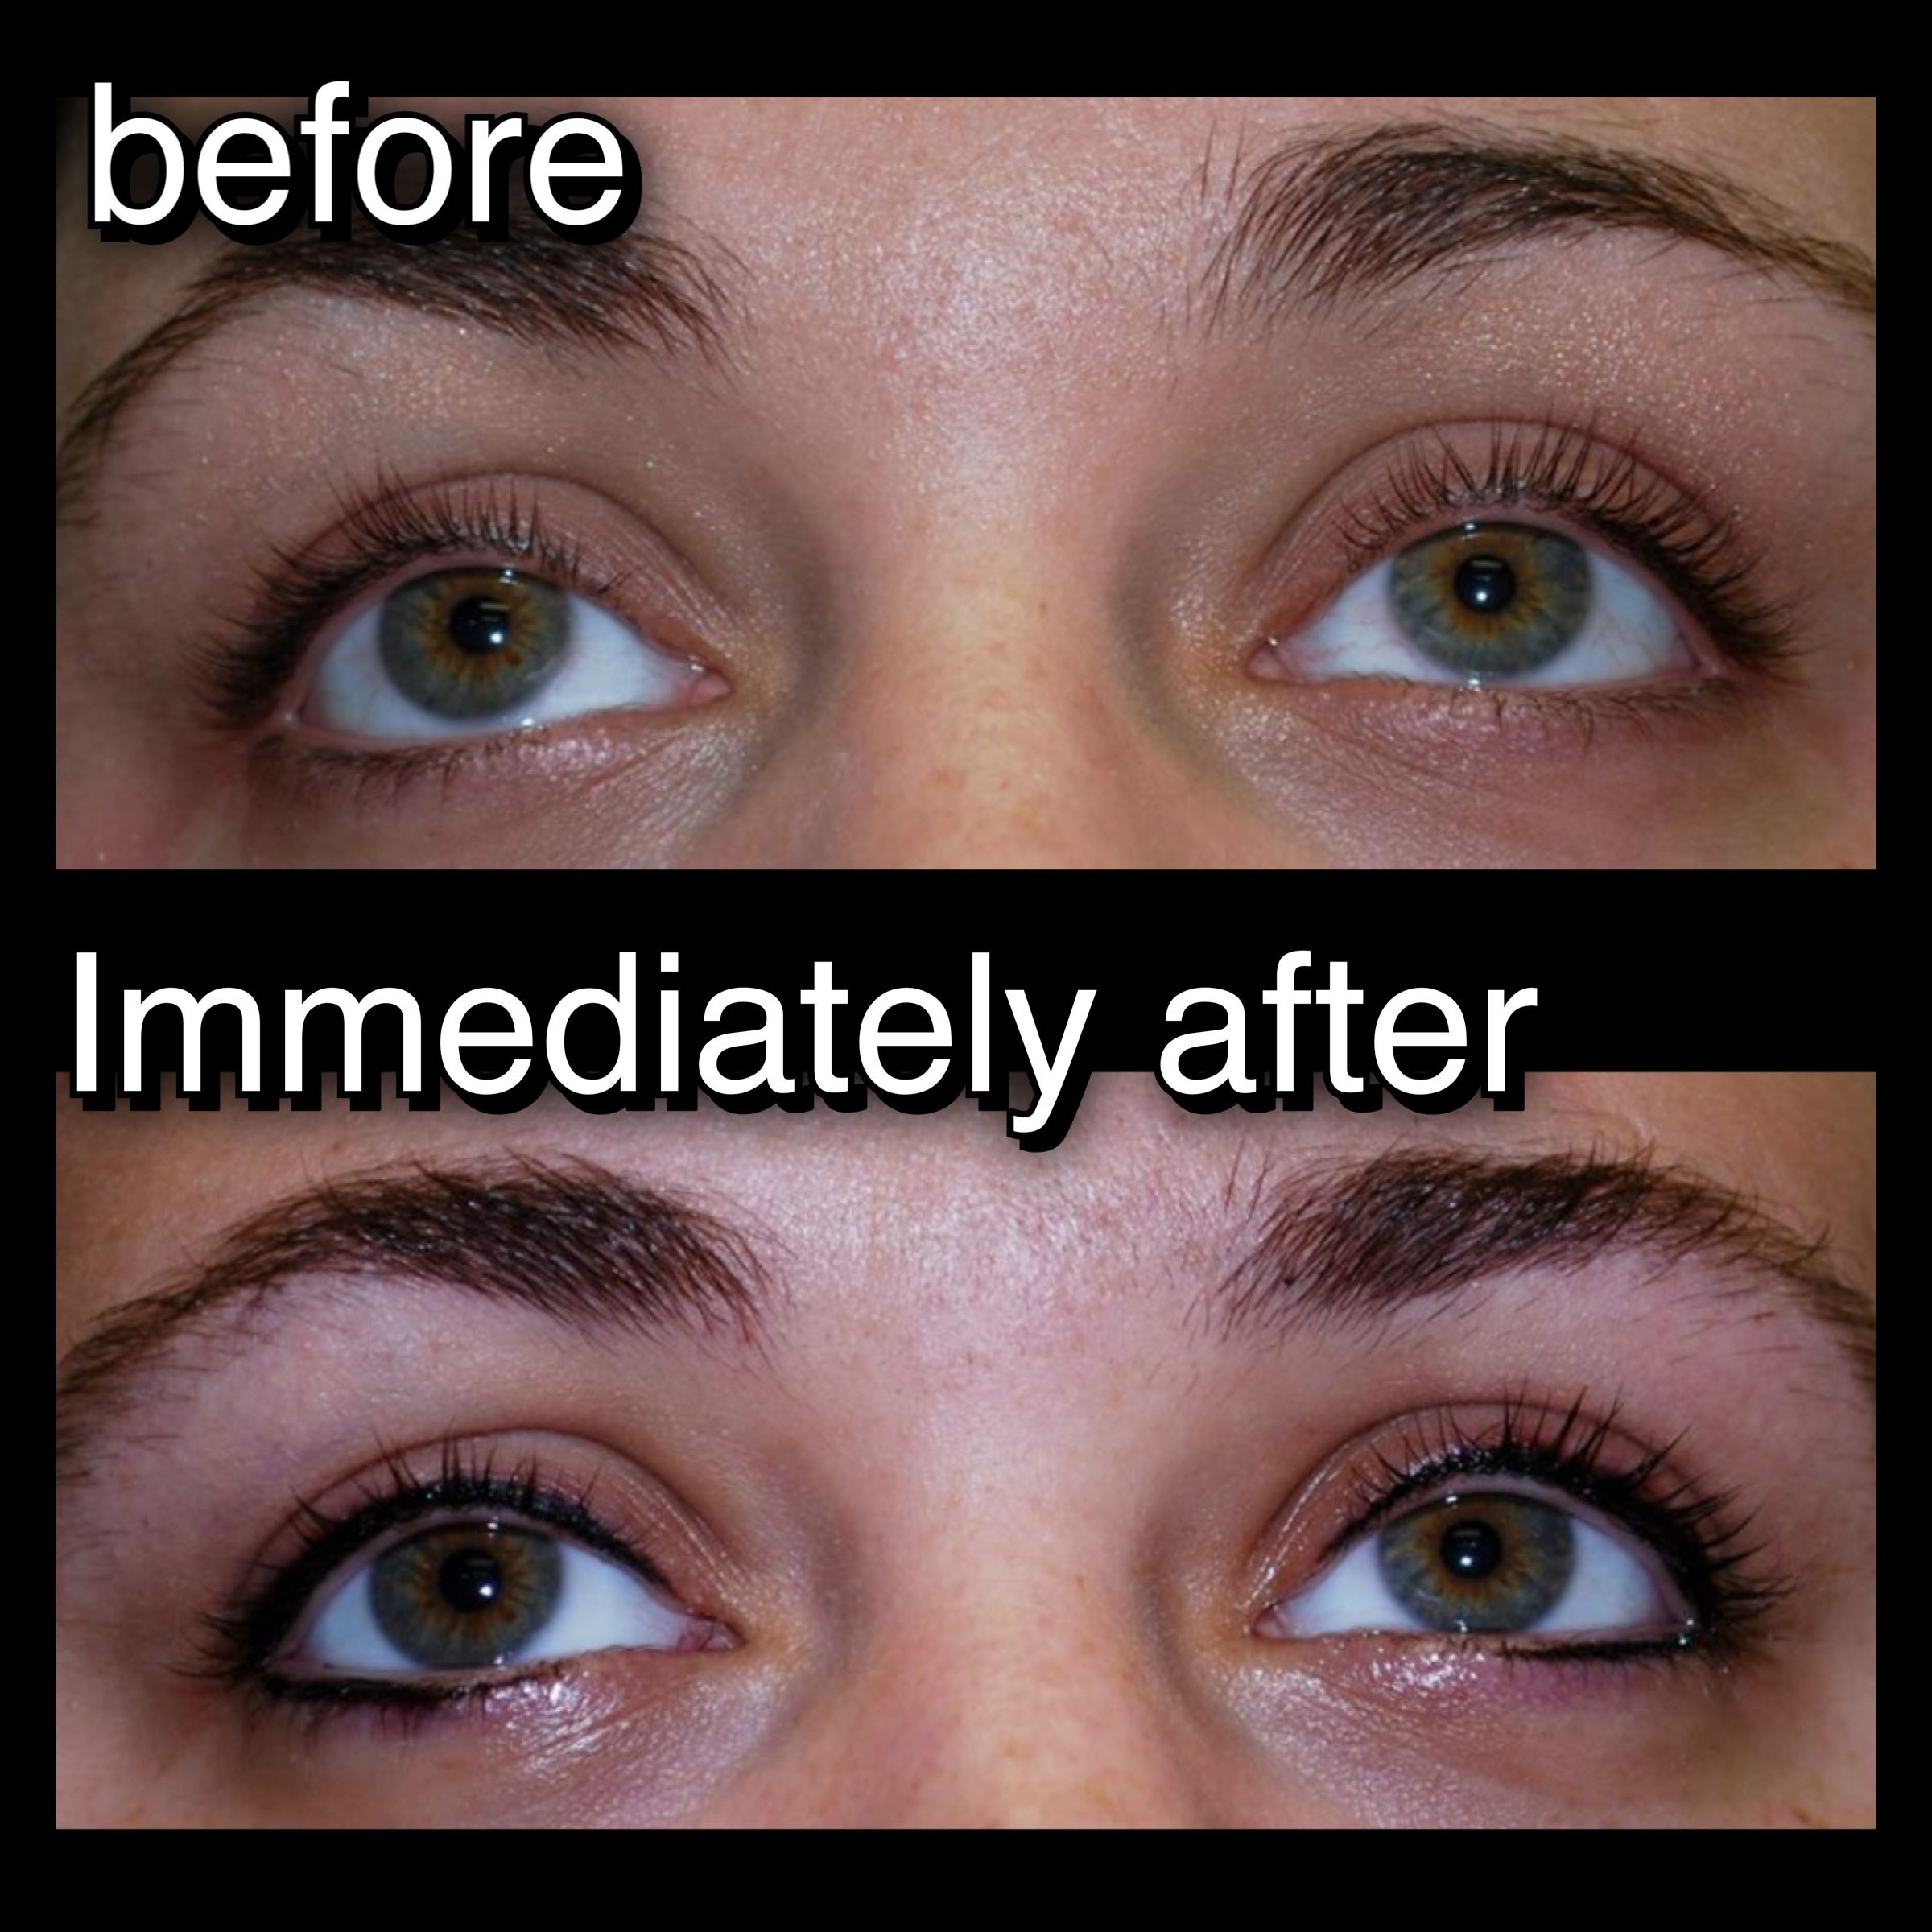 Blonde Eyelashes Before And After Permanent Tattooed Eyebrows Google Search Eyebrow Tattoo Eyebrows Eyelashes